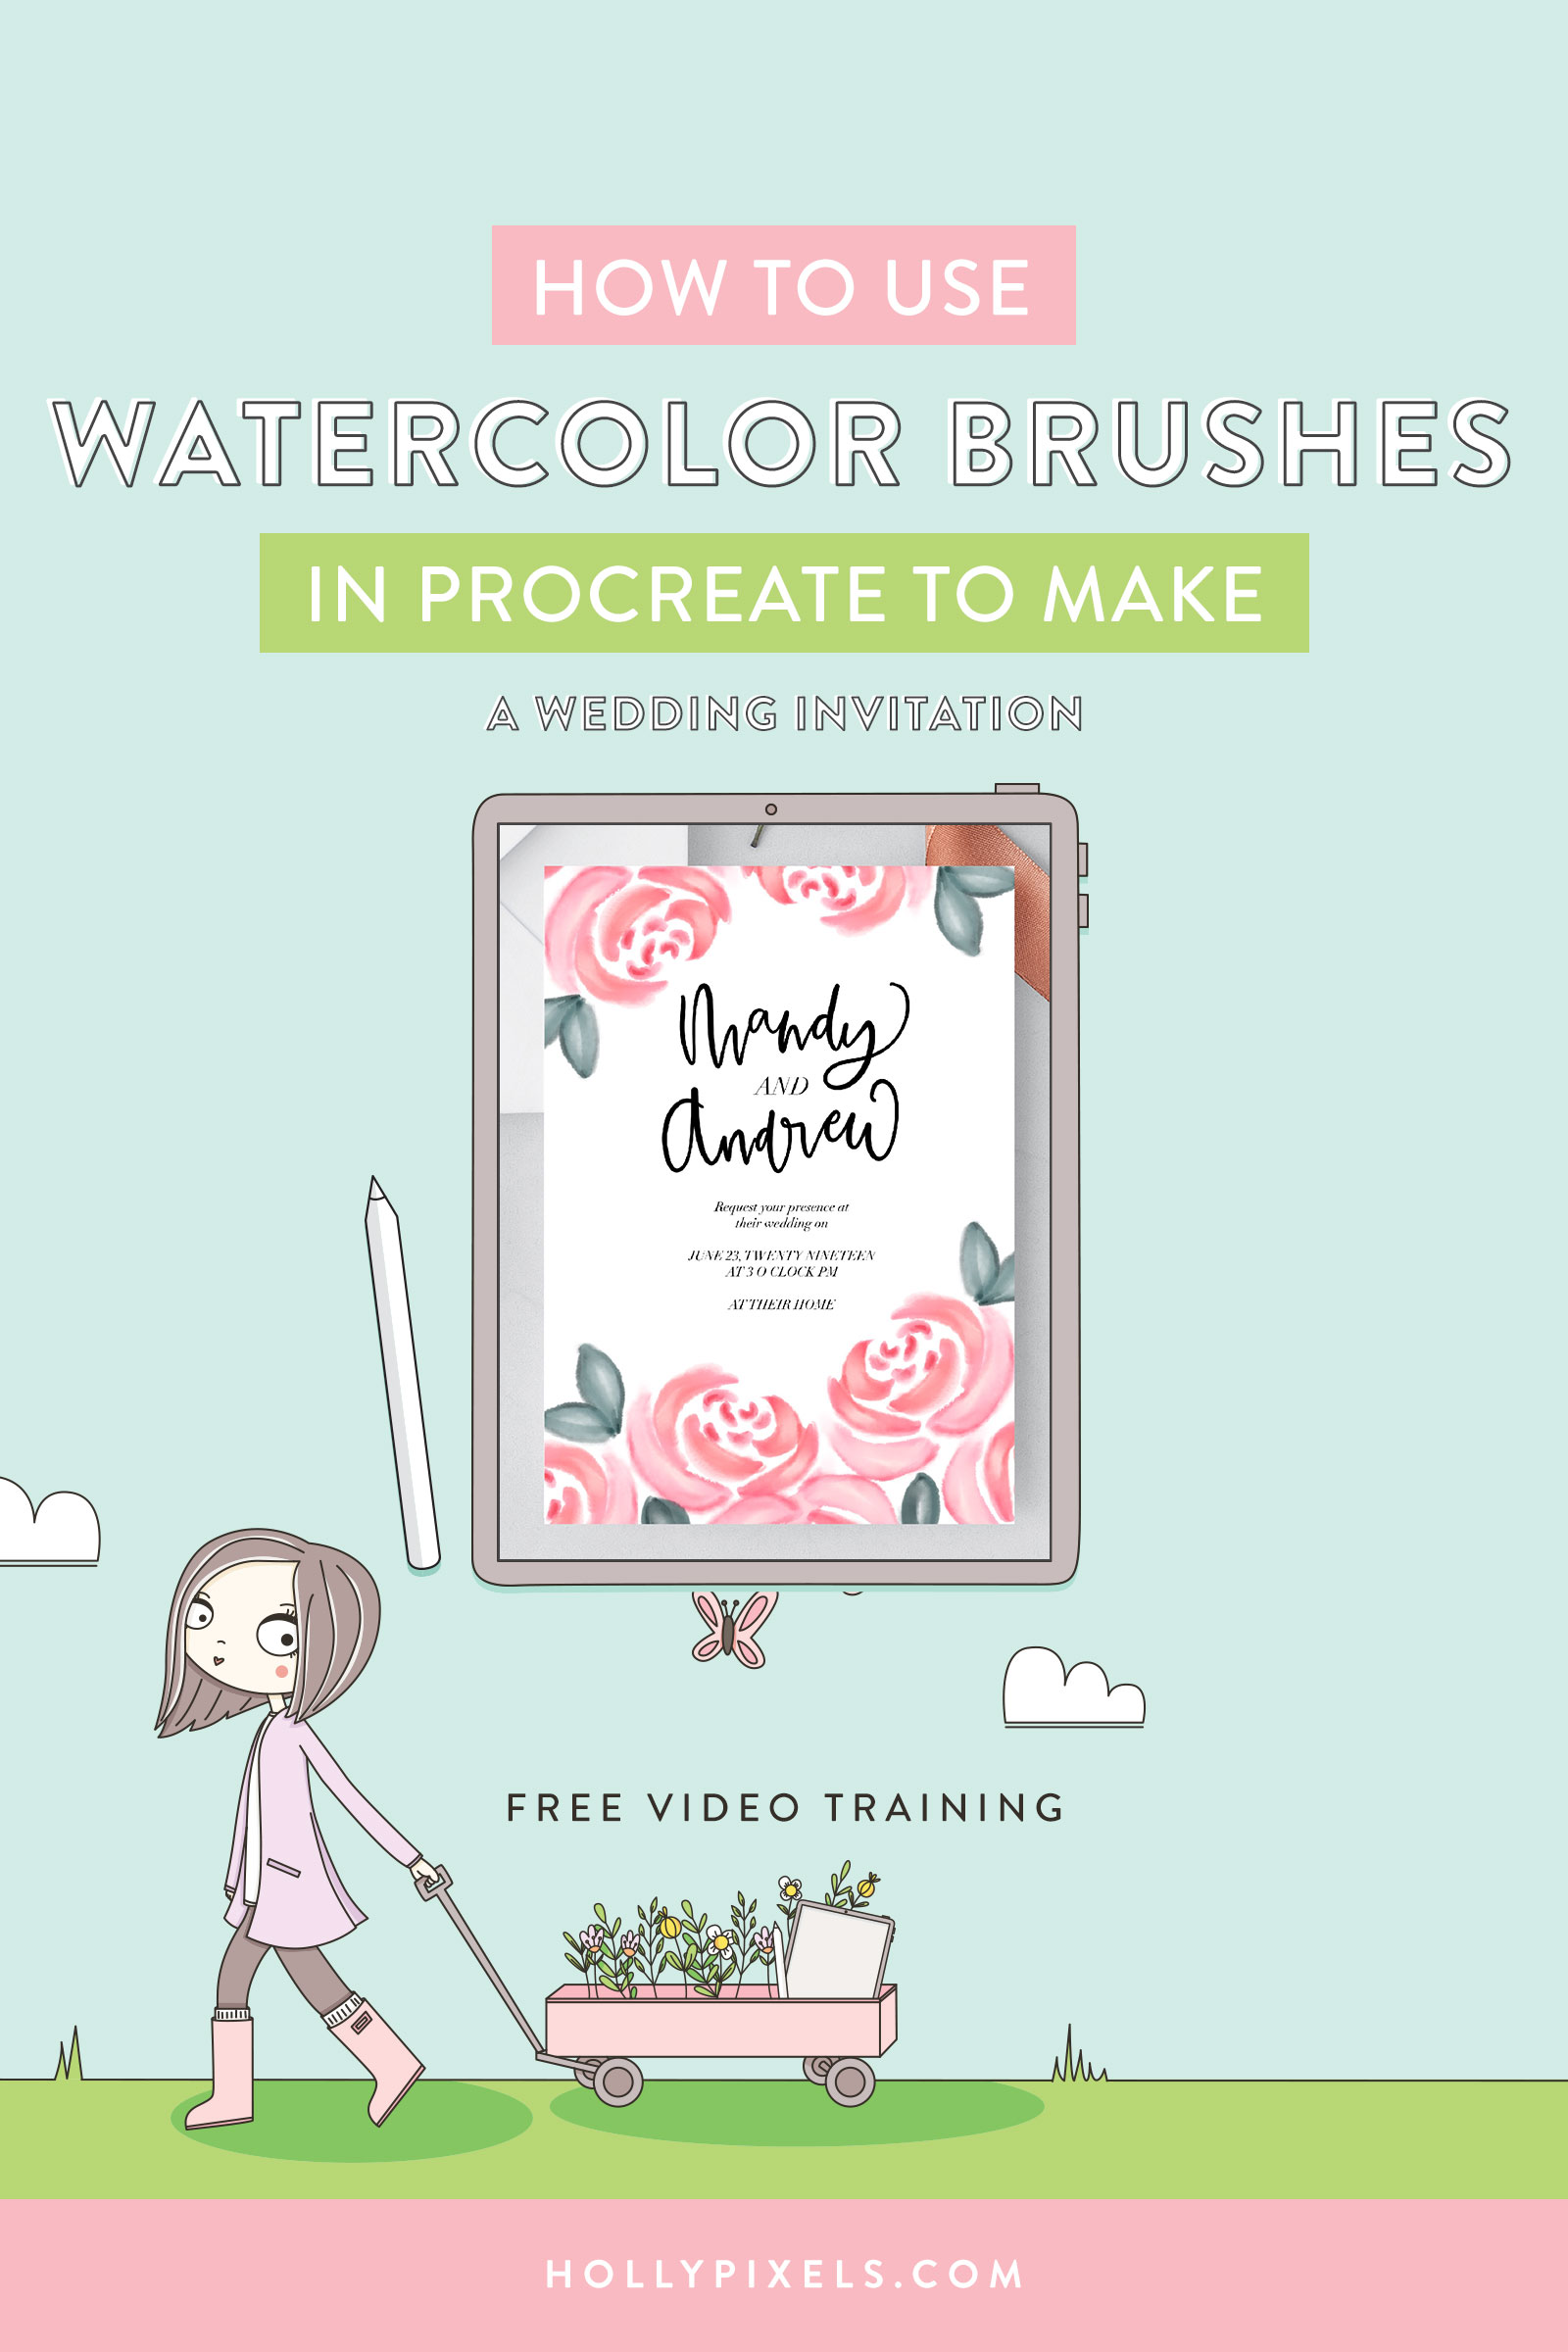 I'm not a watercolor artist by any means. I can paint some loose florals. But when I found this super fun HUGE set of Procreate brushes by PicbyKate I had to grab them and make something you could follow along with. Let's make a watercolor procreate brush wedding invitation together.